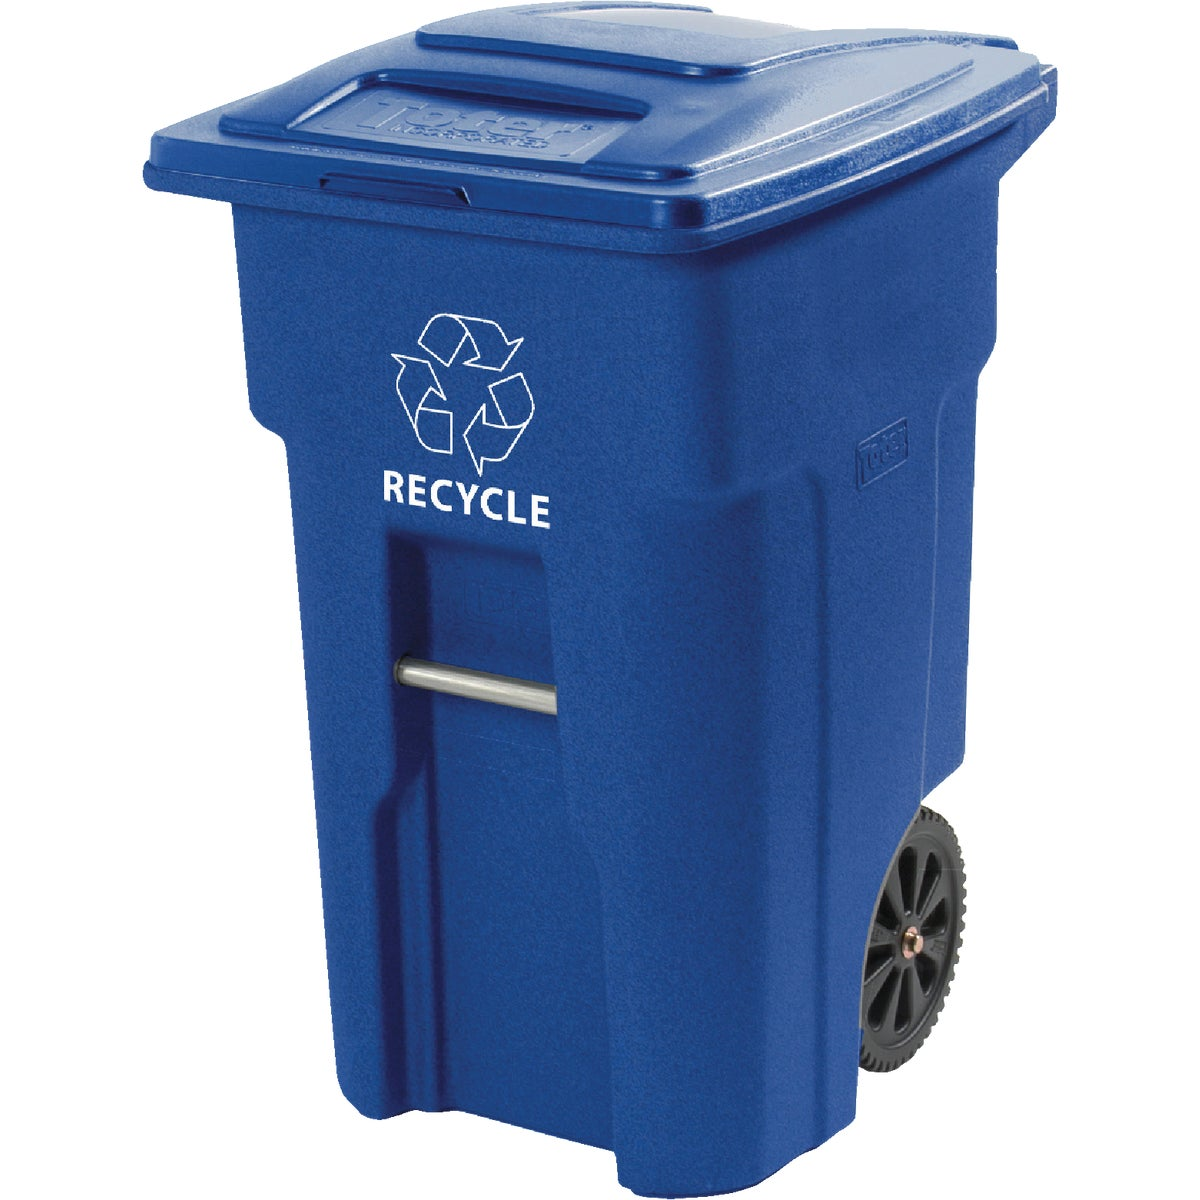 32GAL WHEEL RECYCLE BIN - 025532-D1BLU by Toter